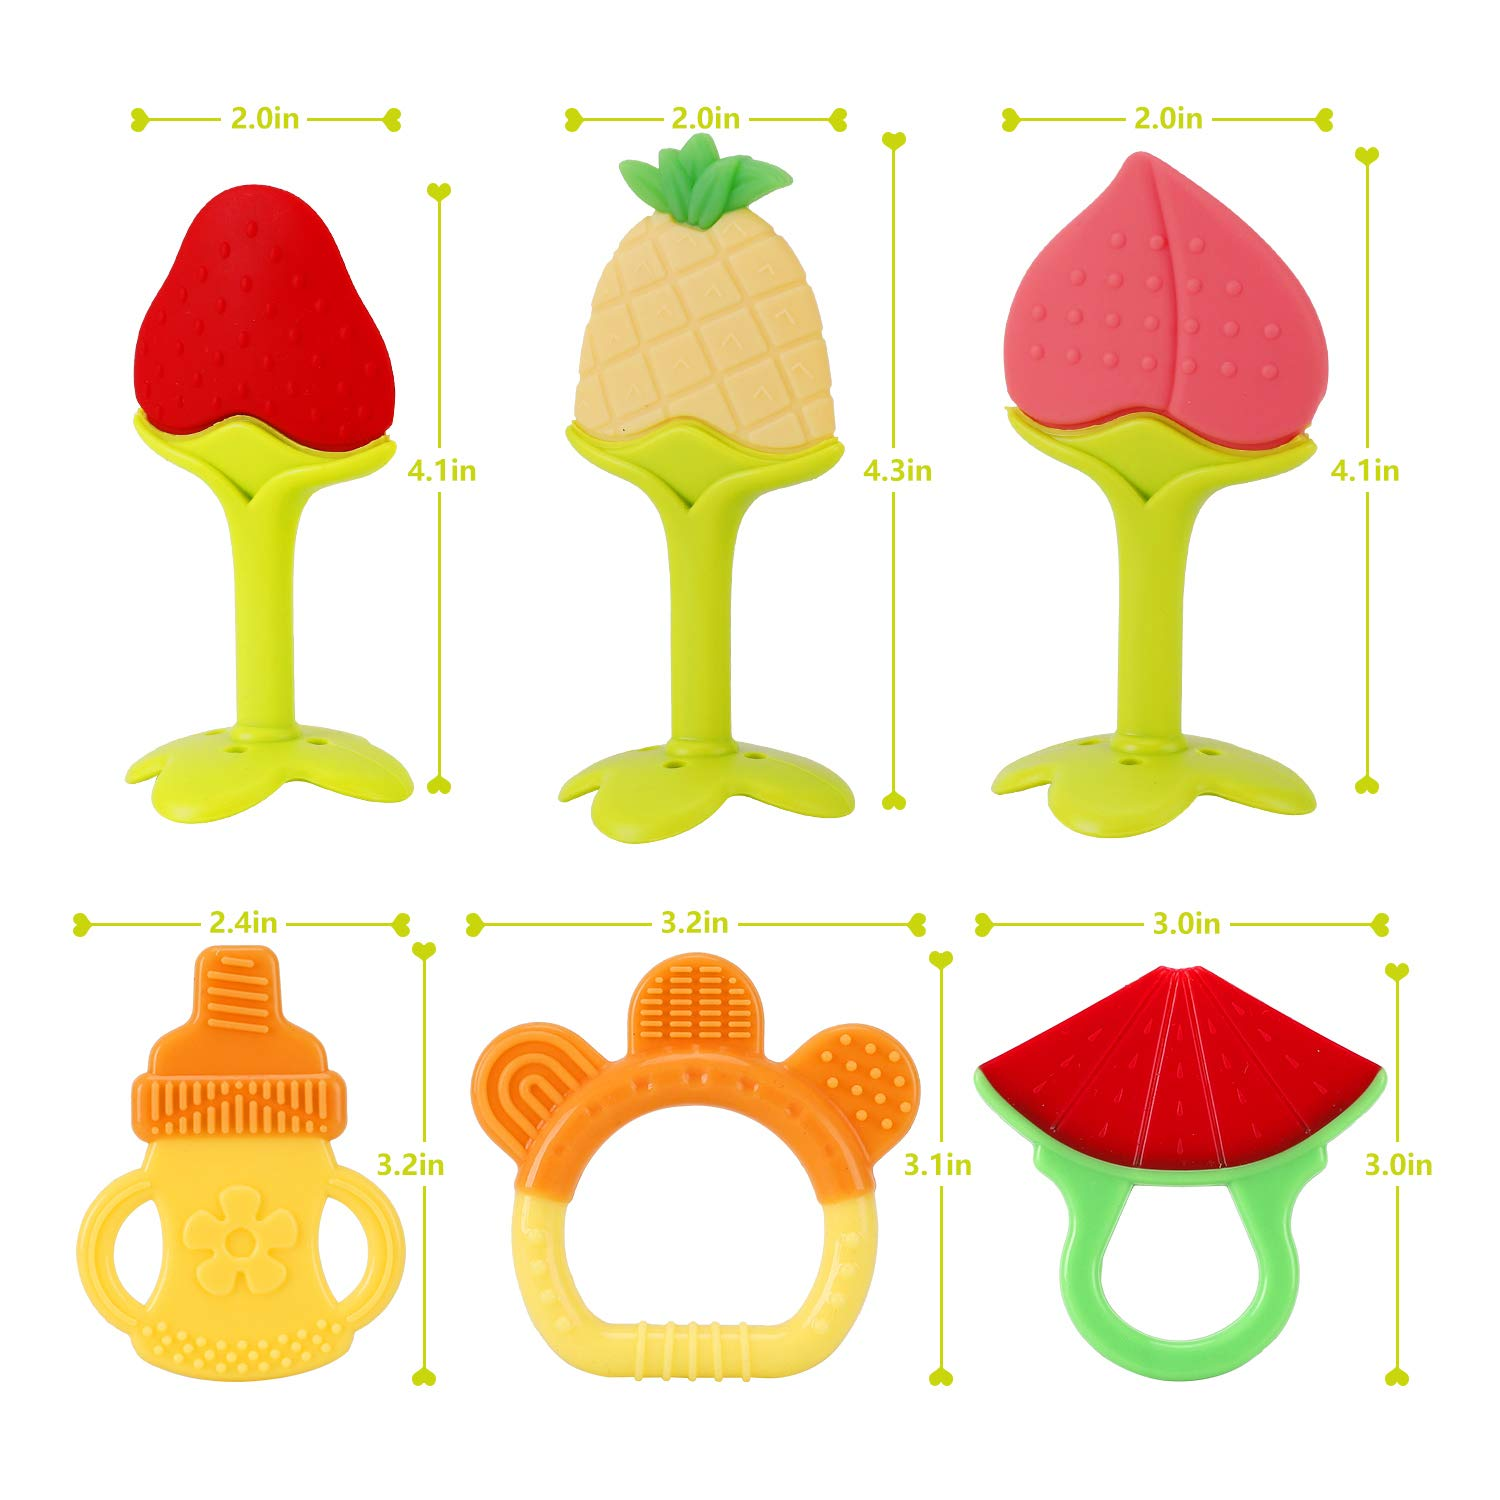 Soft /& Textured Babies Shower Gift Silicone BPA Free Natural Organic Freezer Safe Teethers for Newborn Infant SLotic Baby Teething Toys 6 Pack